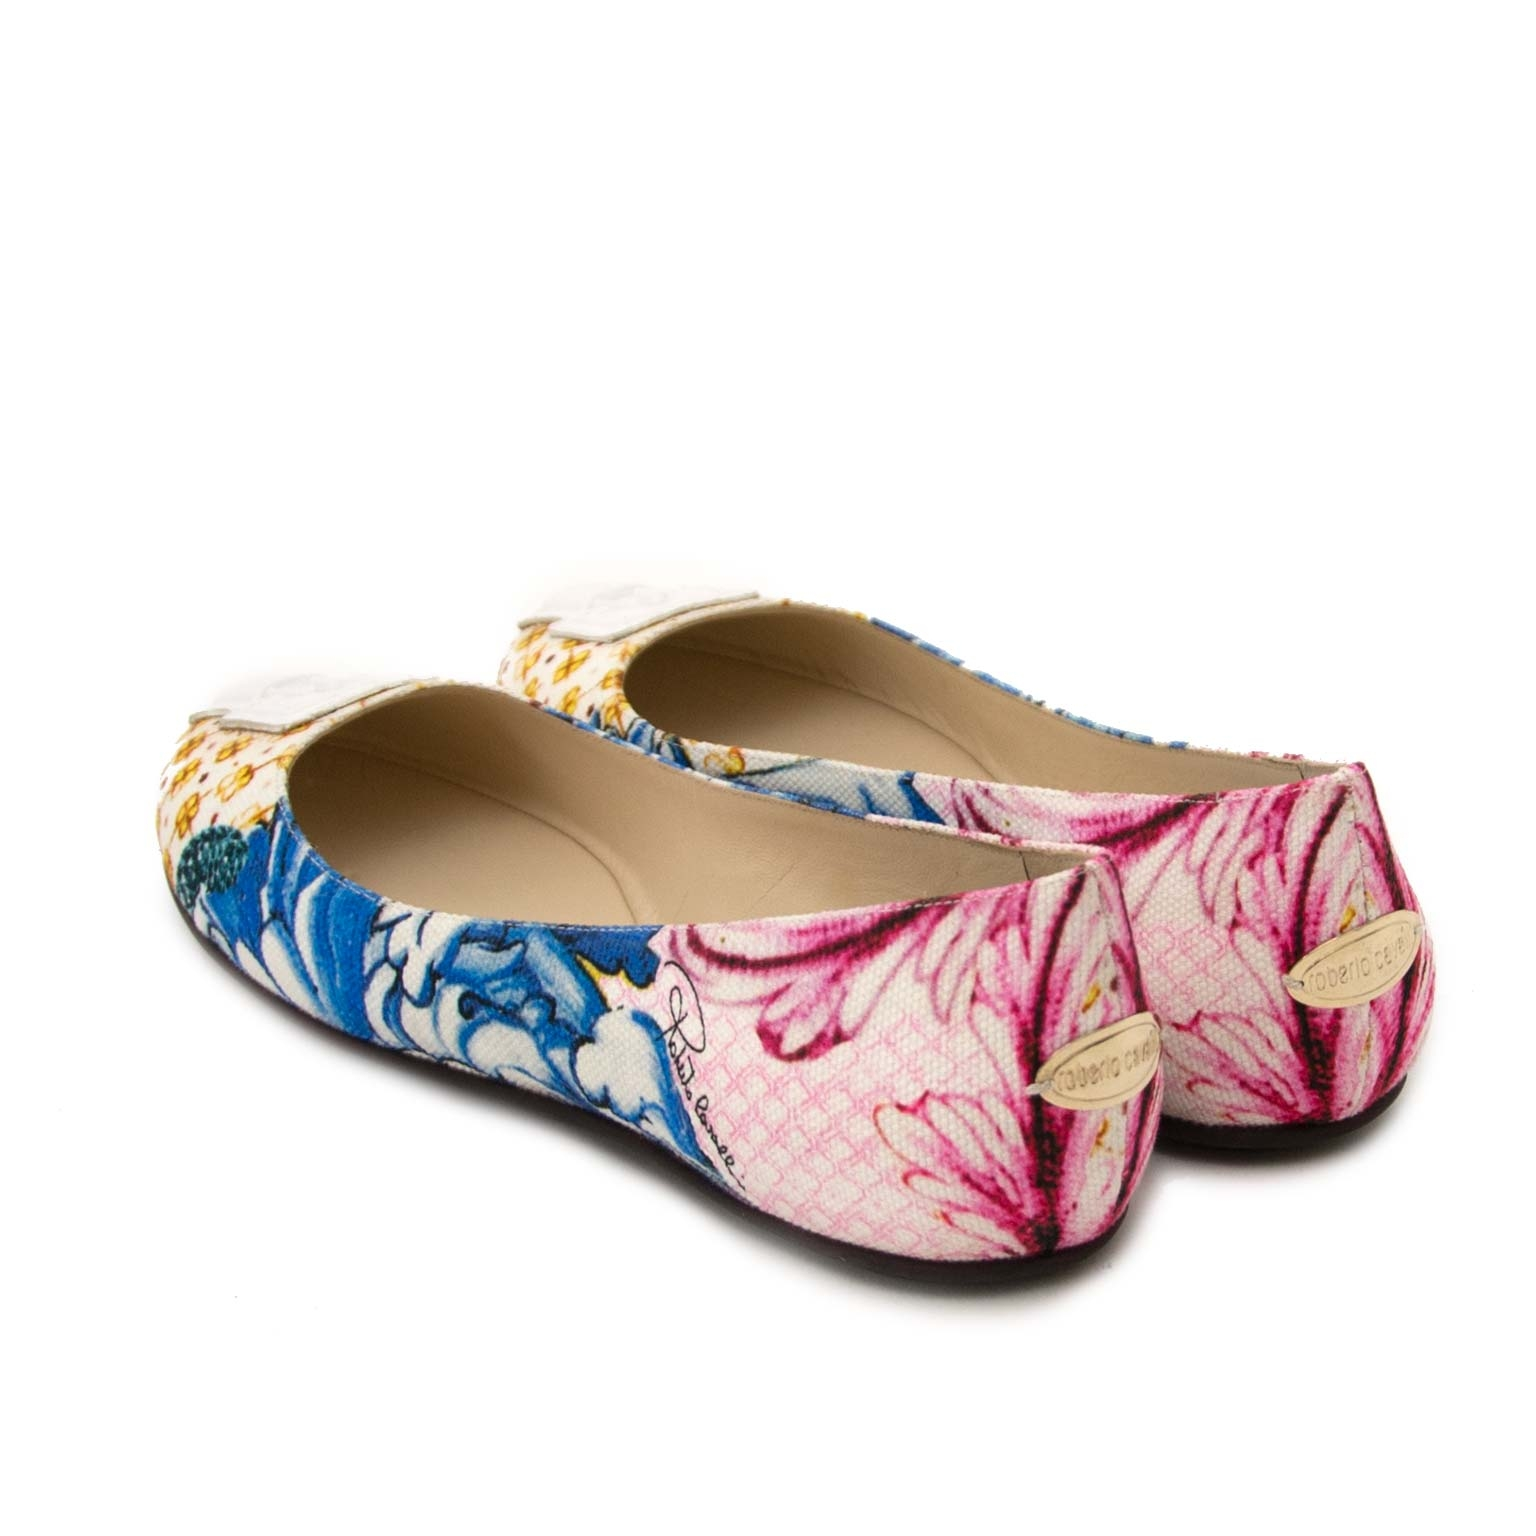 Buy roberto cavalli ballerinas at labellov vintage fashion webshop belgium